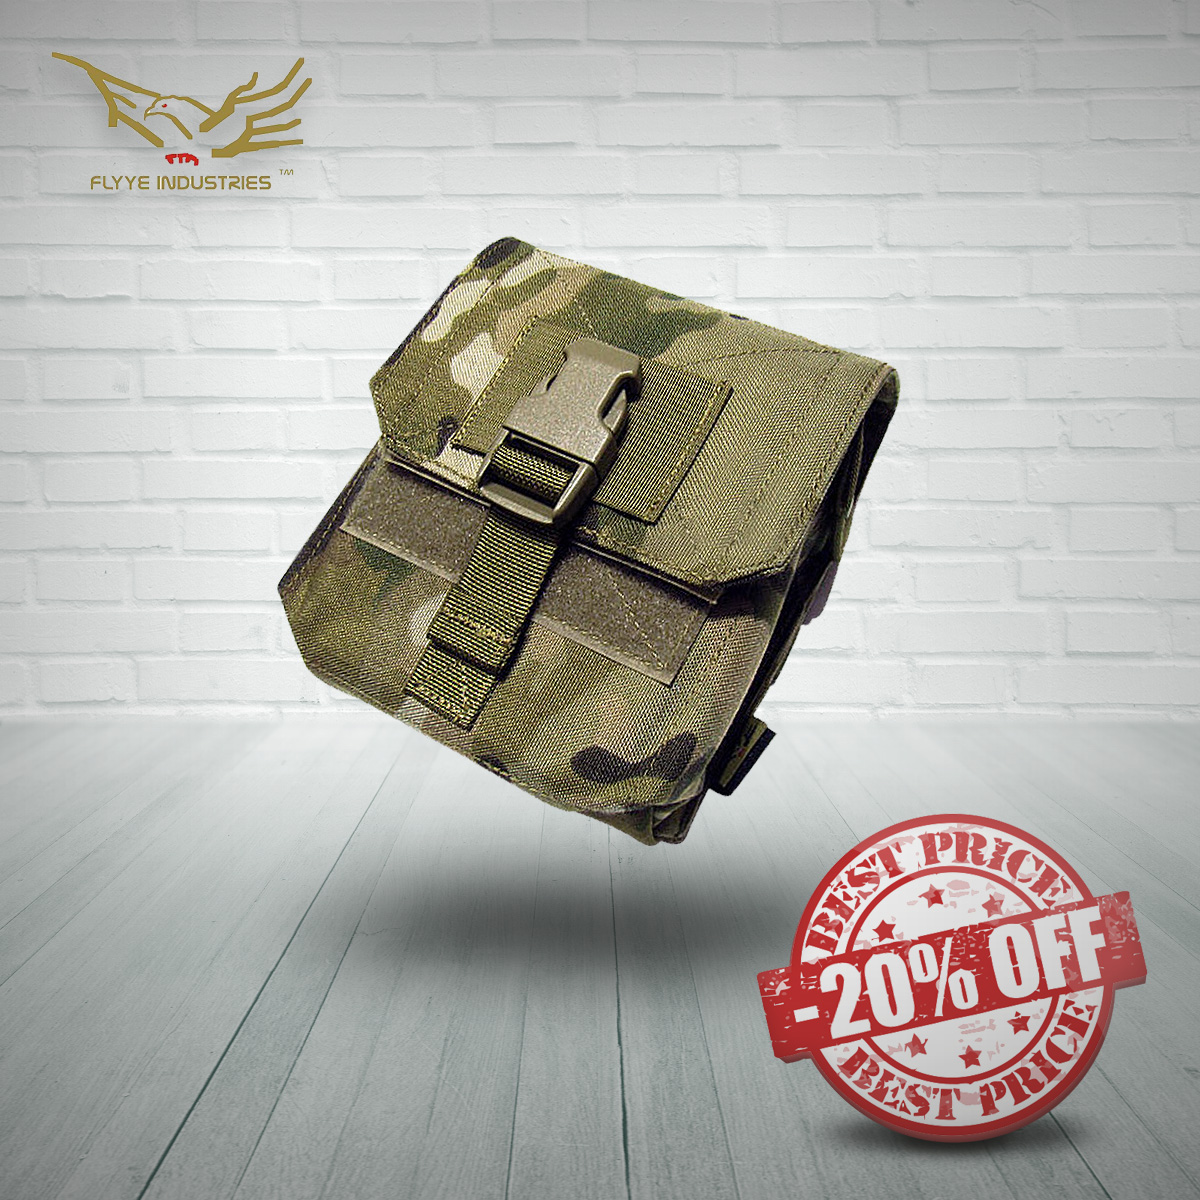 !-sales-1200x1200-flyye-m60-100rds-ammo-pouch